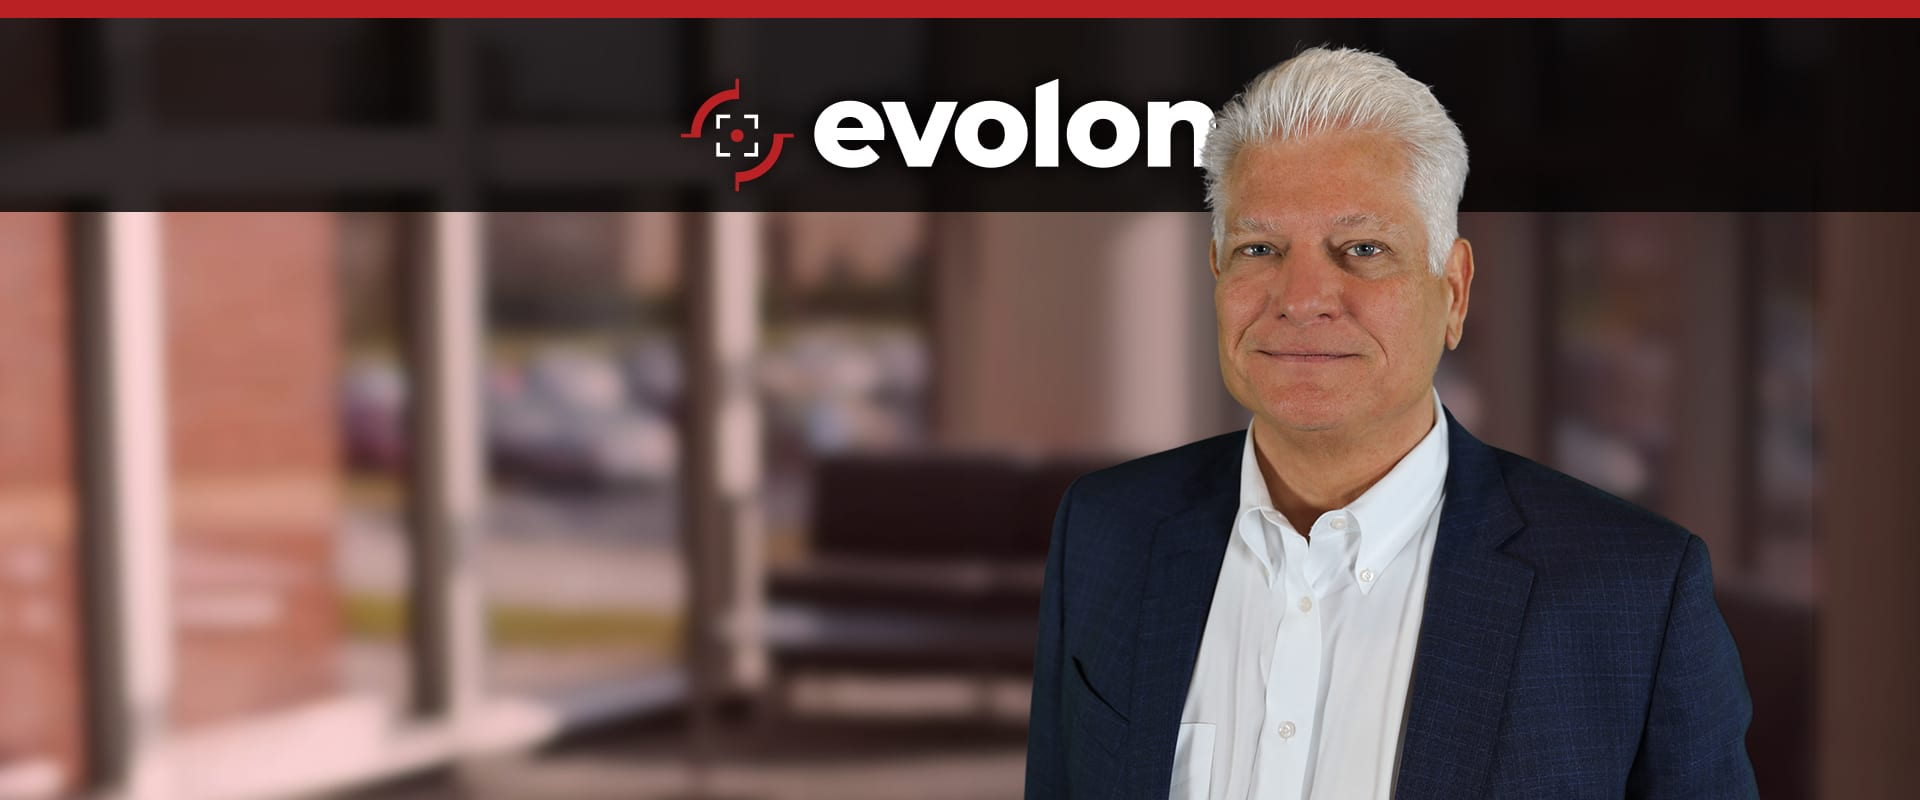 Leading video surveillance solution provider Evolon names technology veteran Kevin Stadler as new CEO